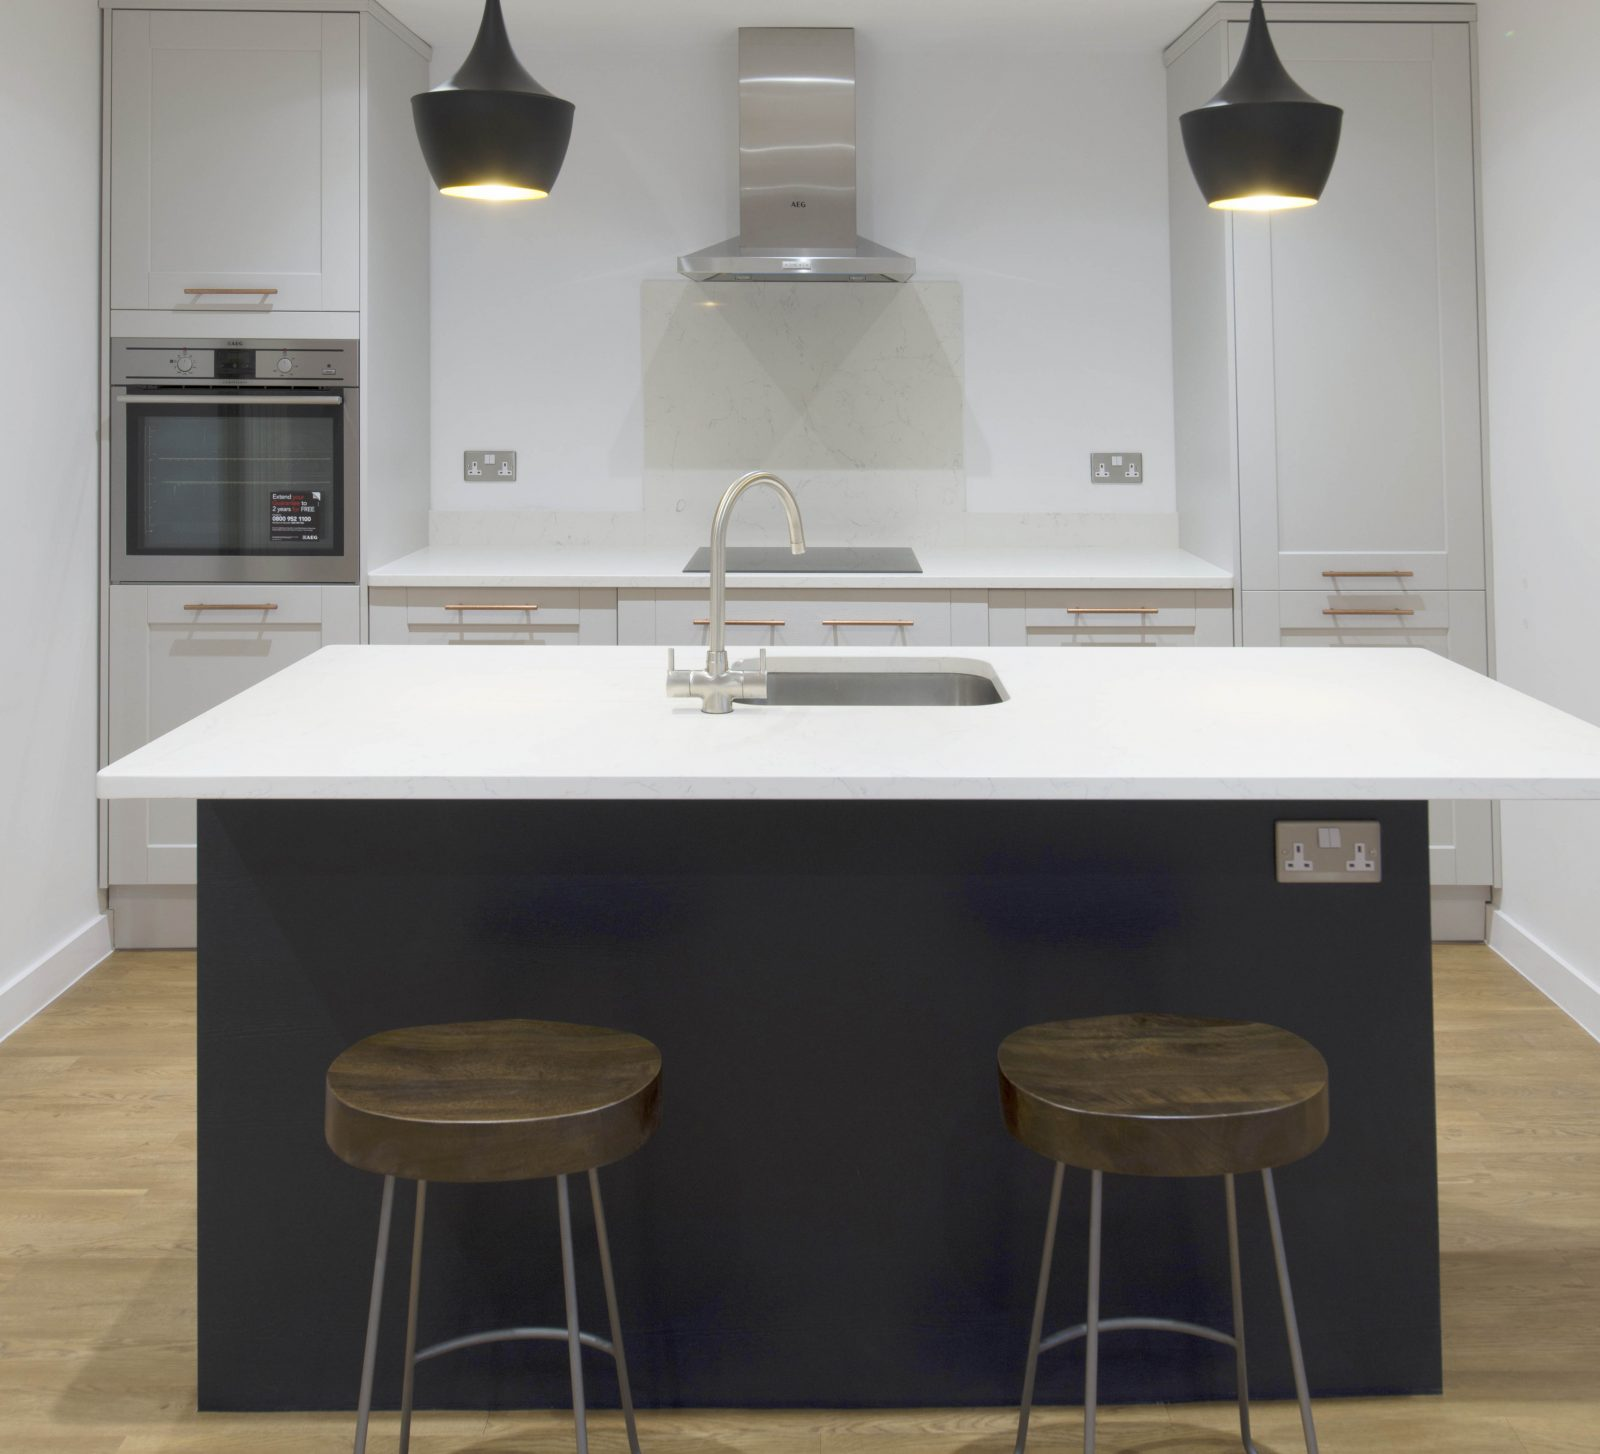 Kitchen of the week… Located in St Albans, Herts, showcasing the Carrera